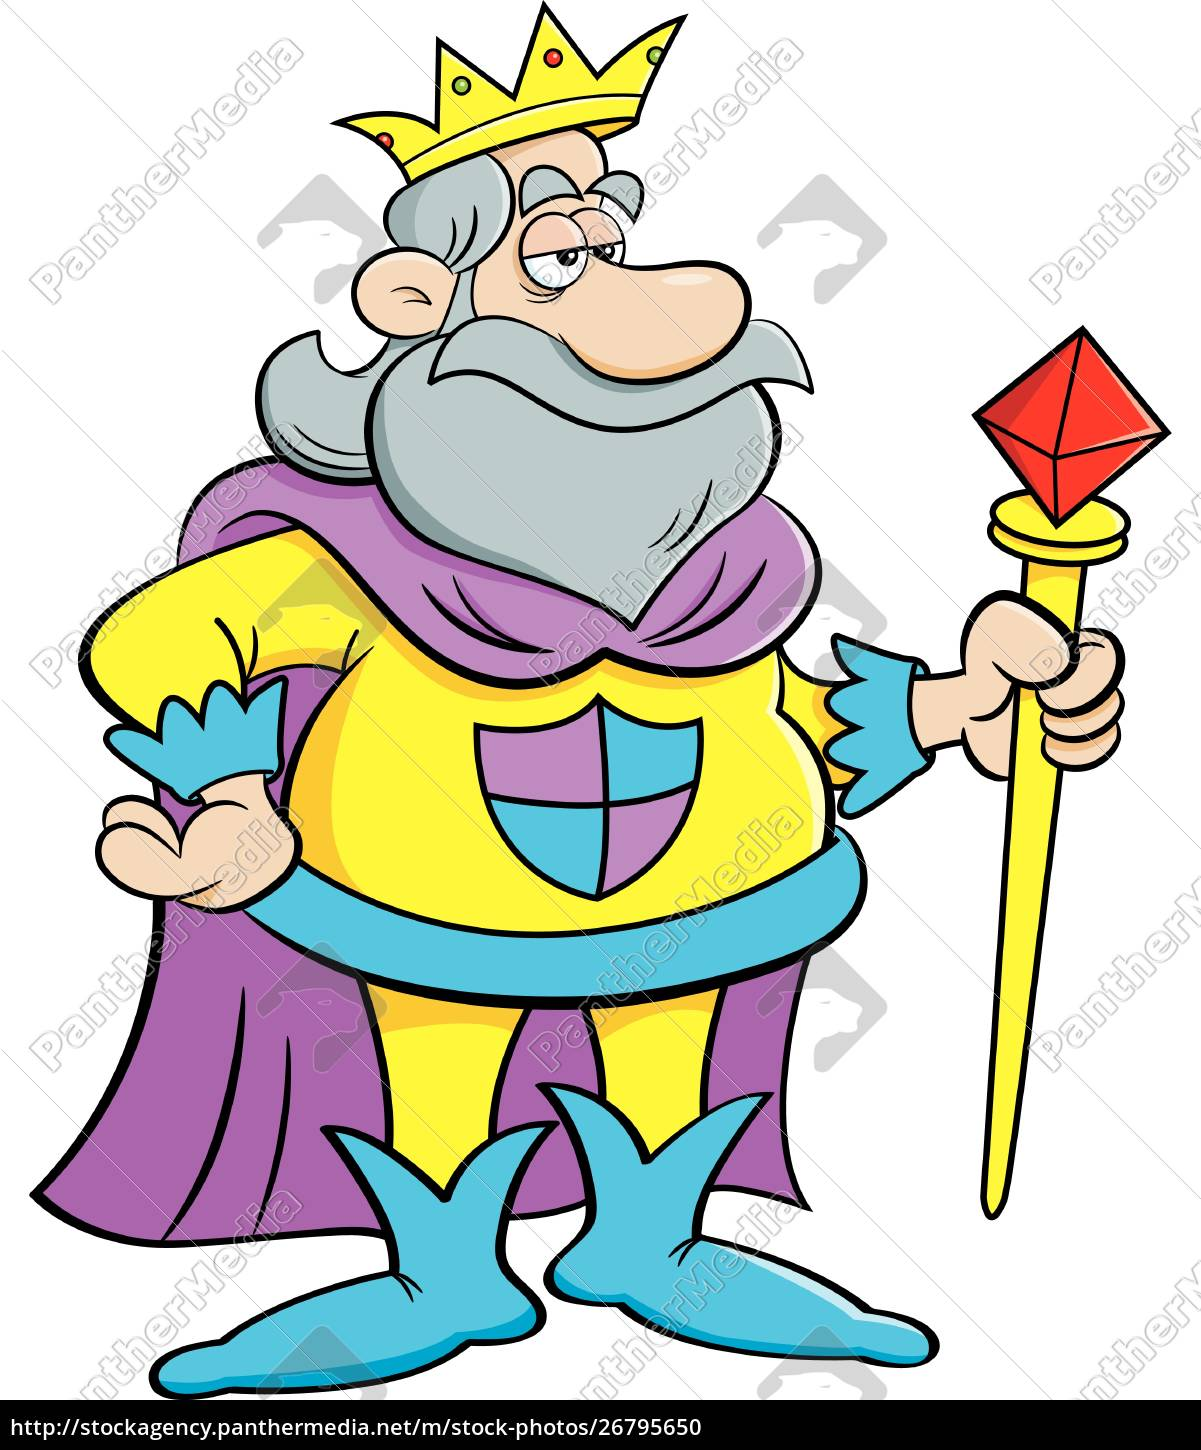 cartoon, illustration, of, a, king, holding - 26795650